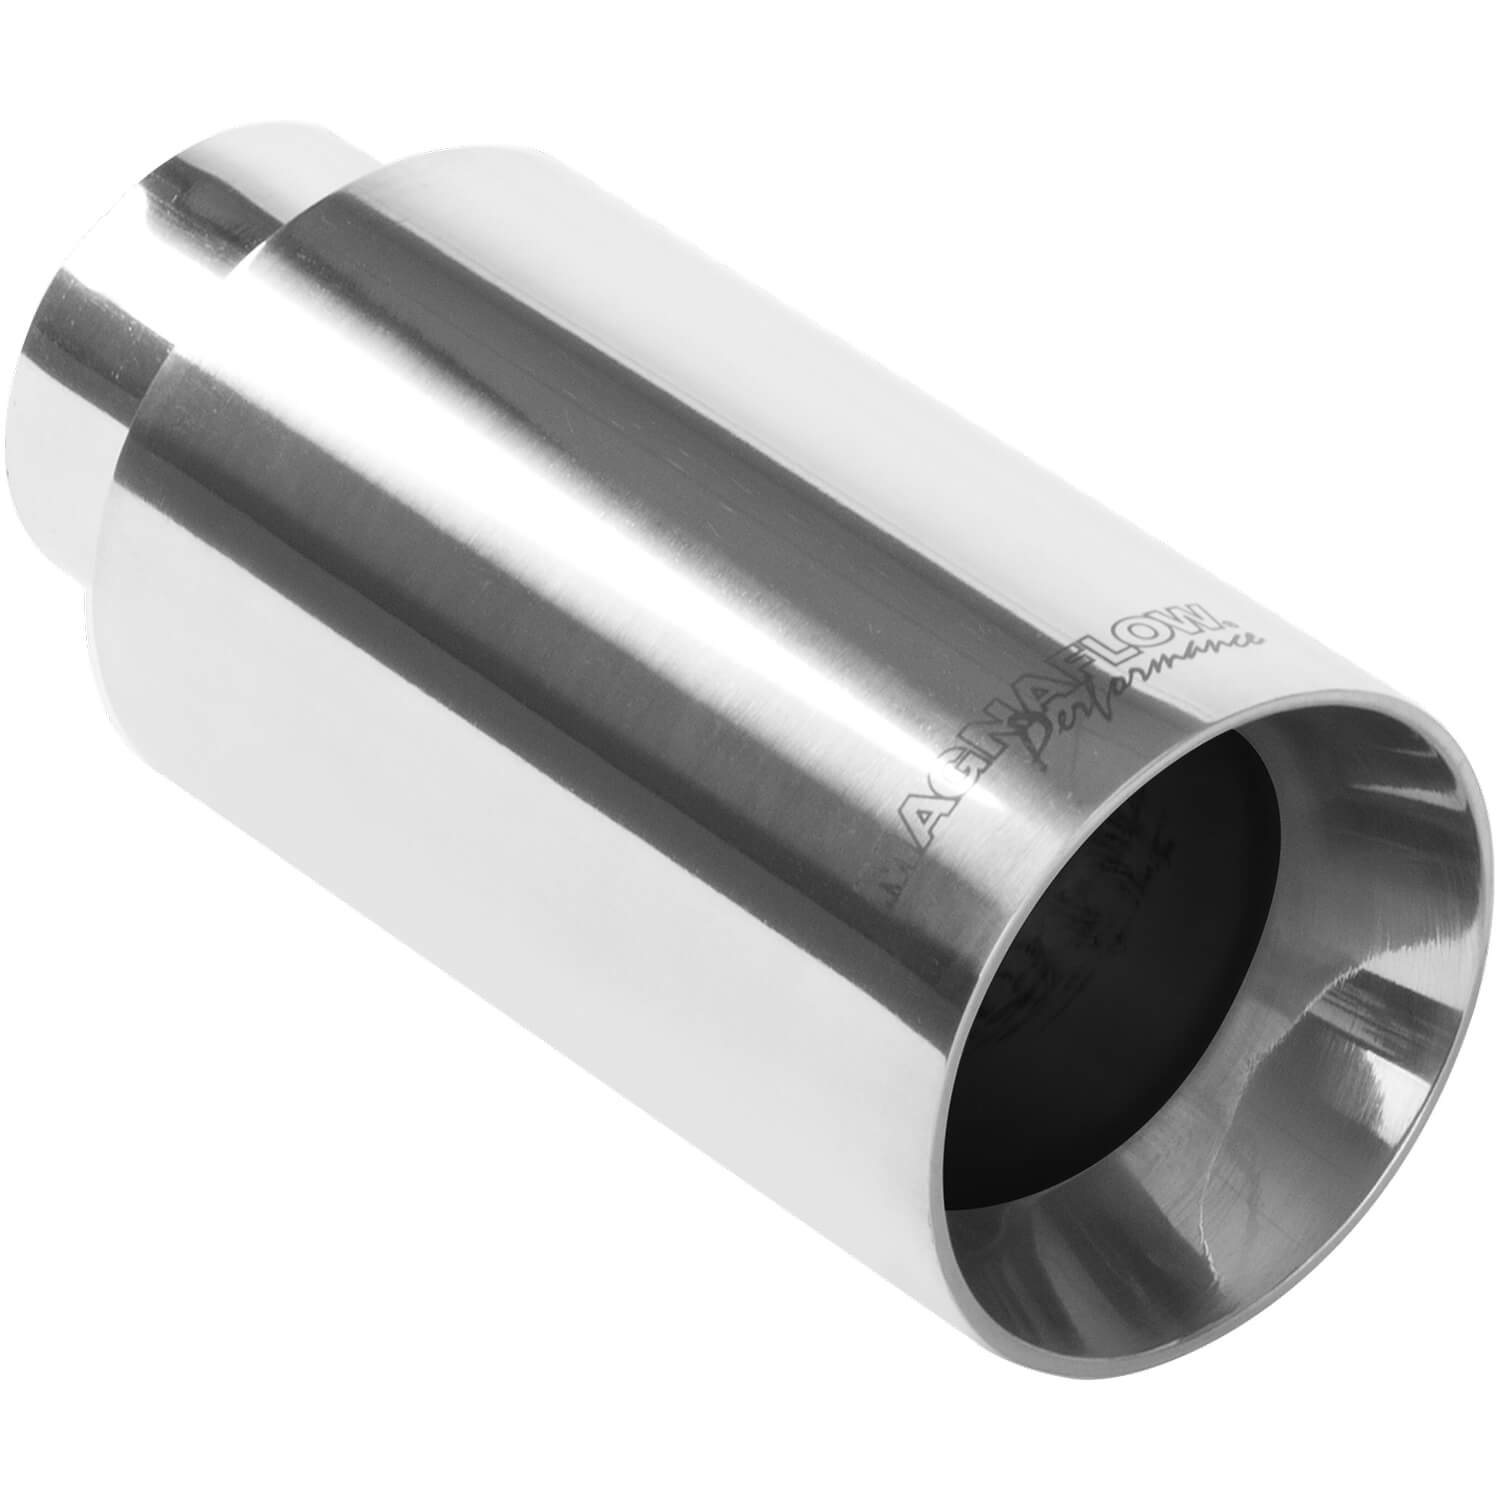 Magnaflow 35125 - Magnaflow Polished Stainless Steel Weld-On Exhaust Tips